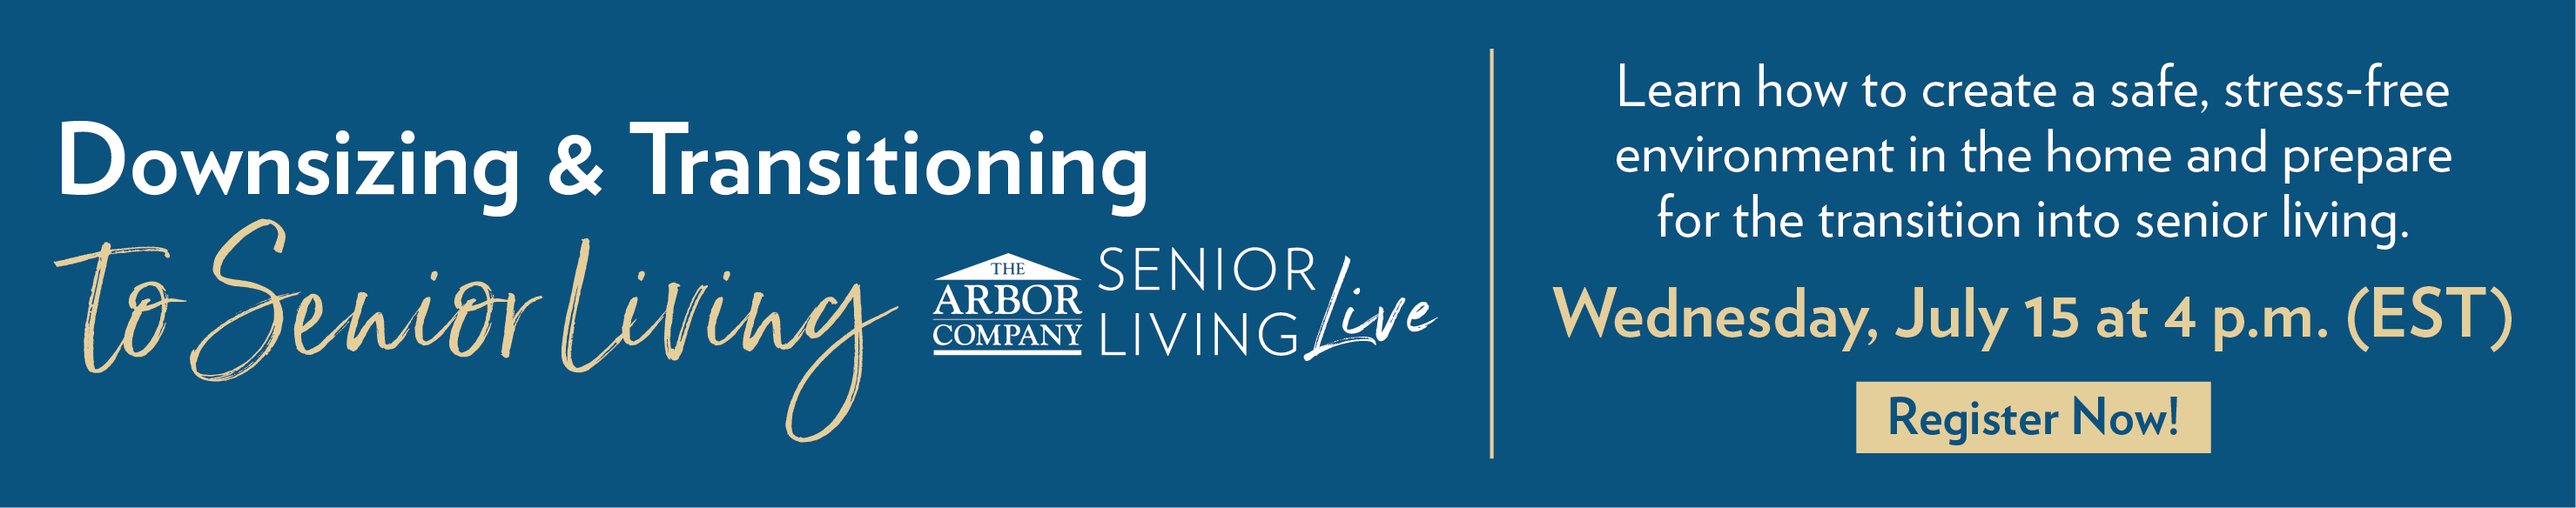 20-ABR-0608 - Webinar - Senior Living LIVE! Downsizing and Transitioning to Senior Living - Sign up Call to Action banner-1